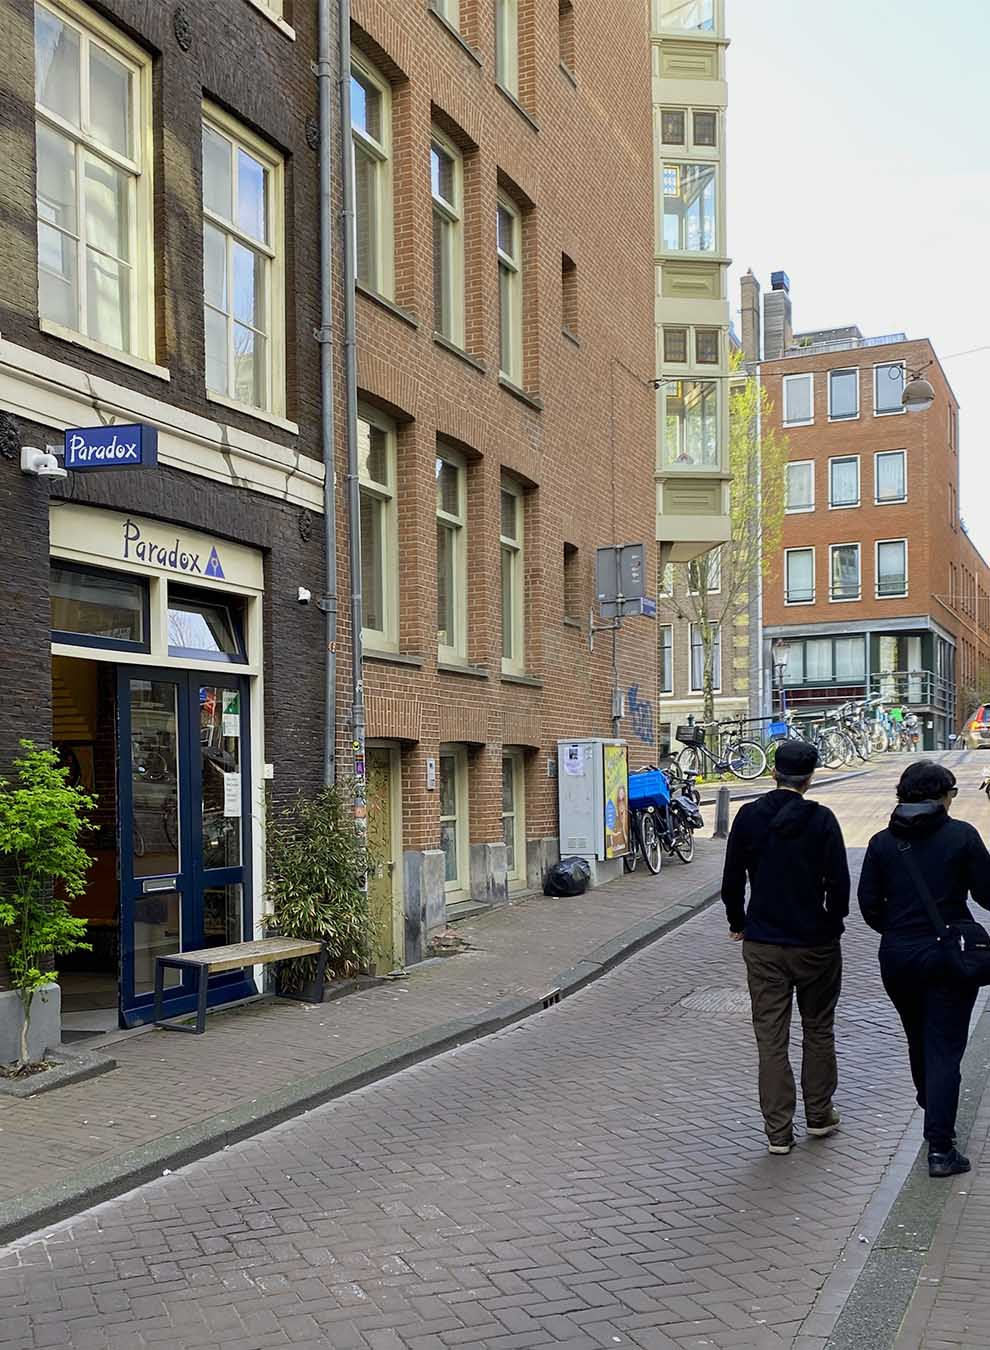 A couple walks on the streets in front of the coffeeshop Paradox in Amsterdam